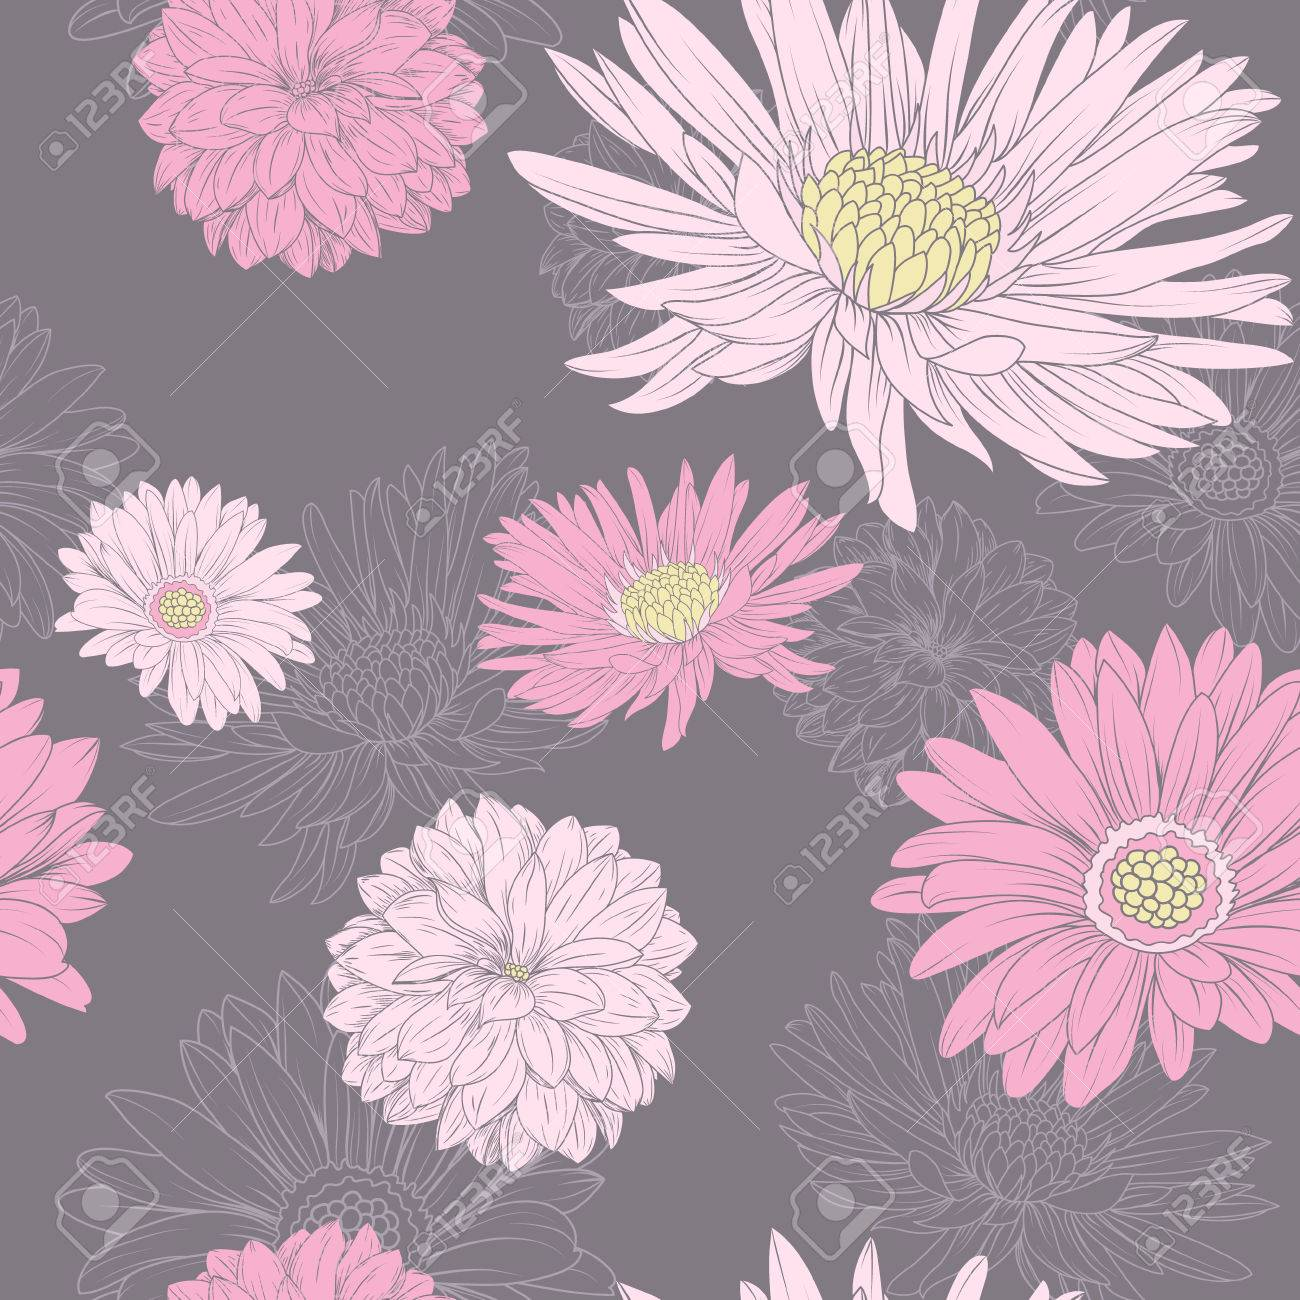 Pink floral seamless vector background floral hrysanthemum seamless - Flower Seamless Pattern Pink Aster And Chrysanthemum At The Black Background Stock Vector 31463575